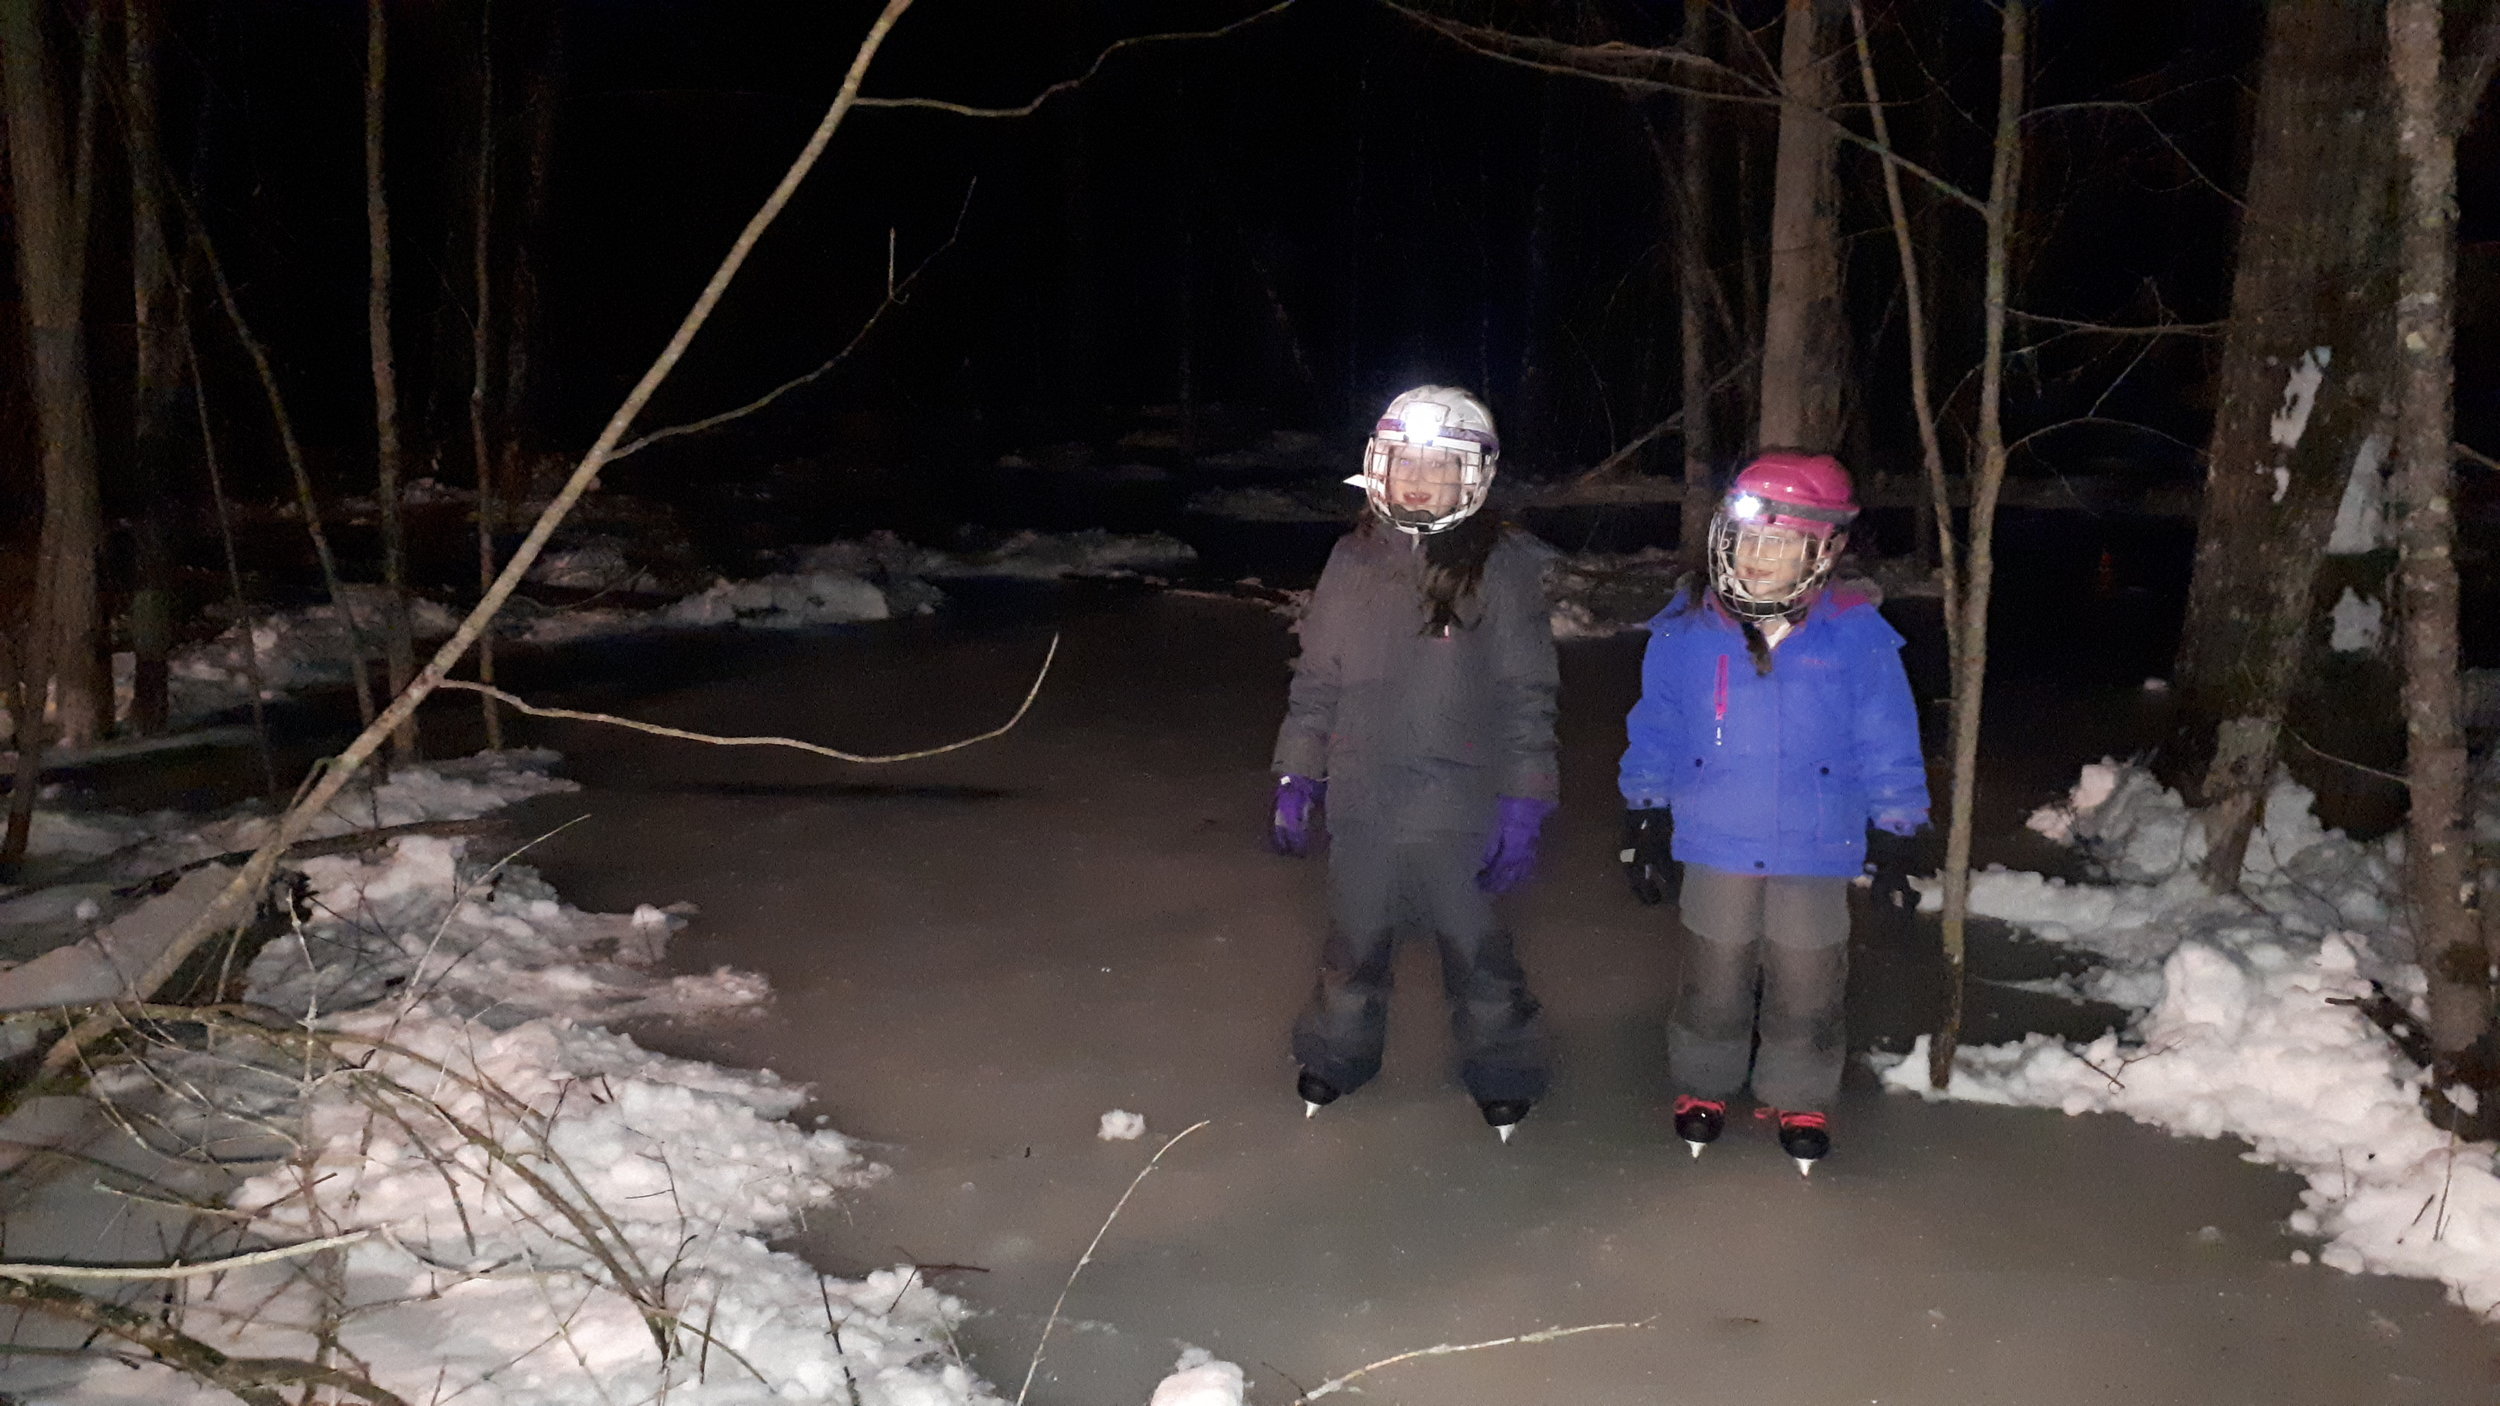 The kids enjoying night skate in forest